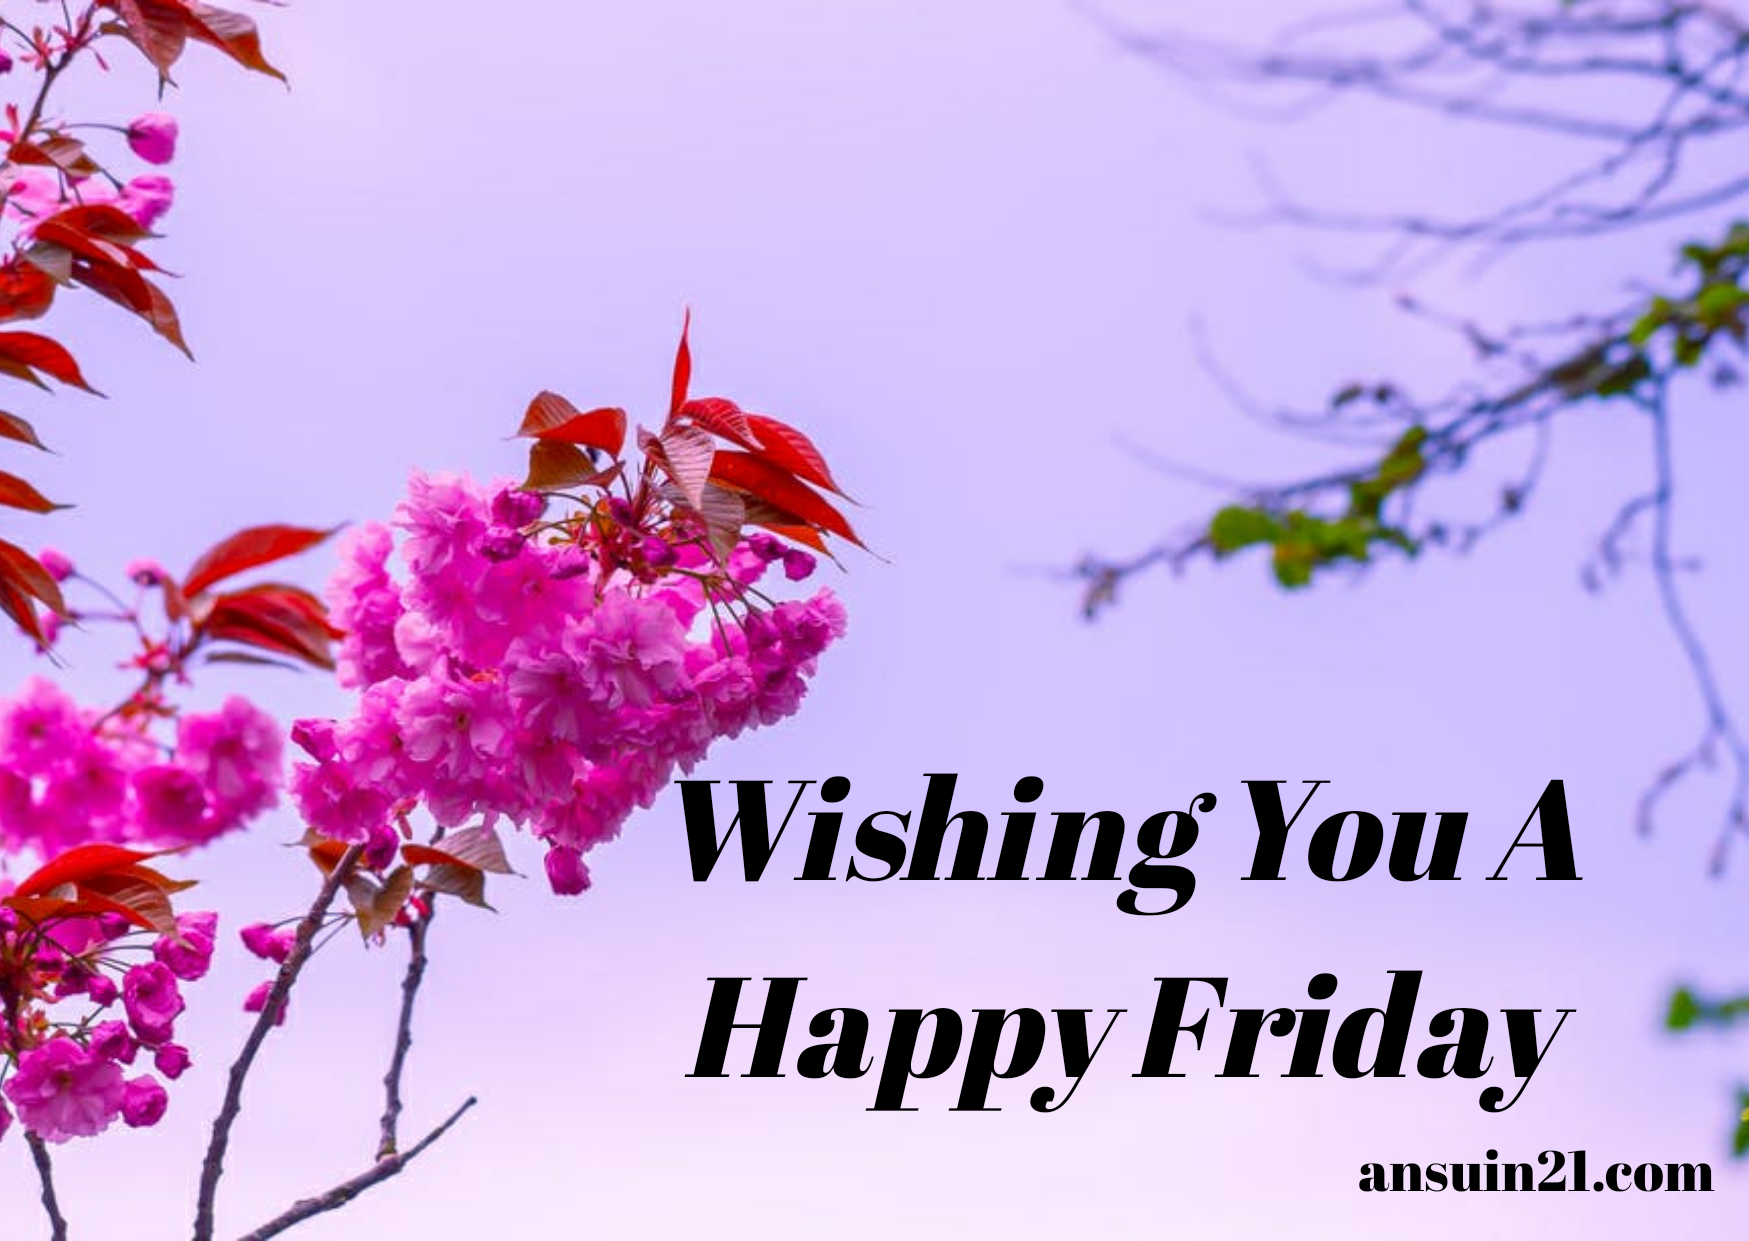 Happy Friday Wishes, Images, Wallpaper, Quotes, For Whatsapp, happy Friday images